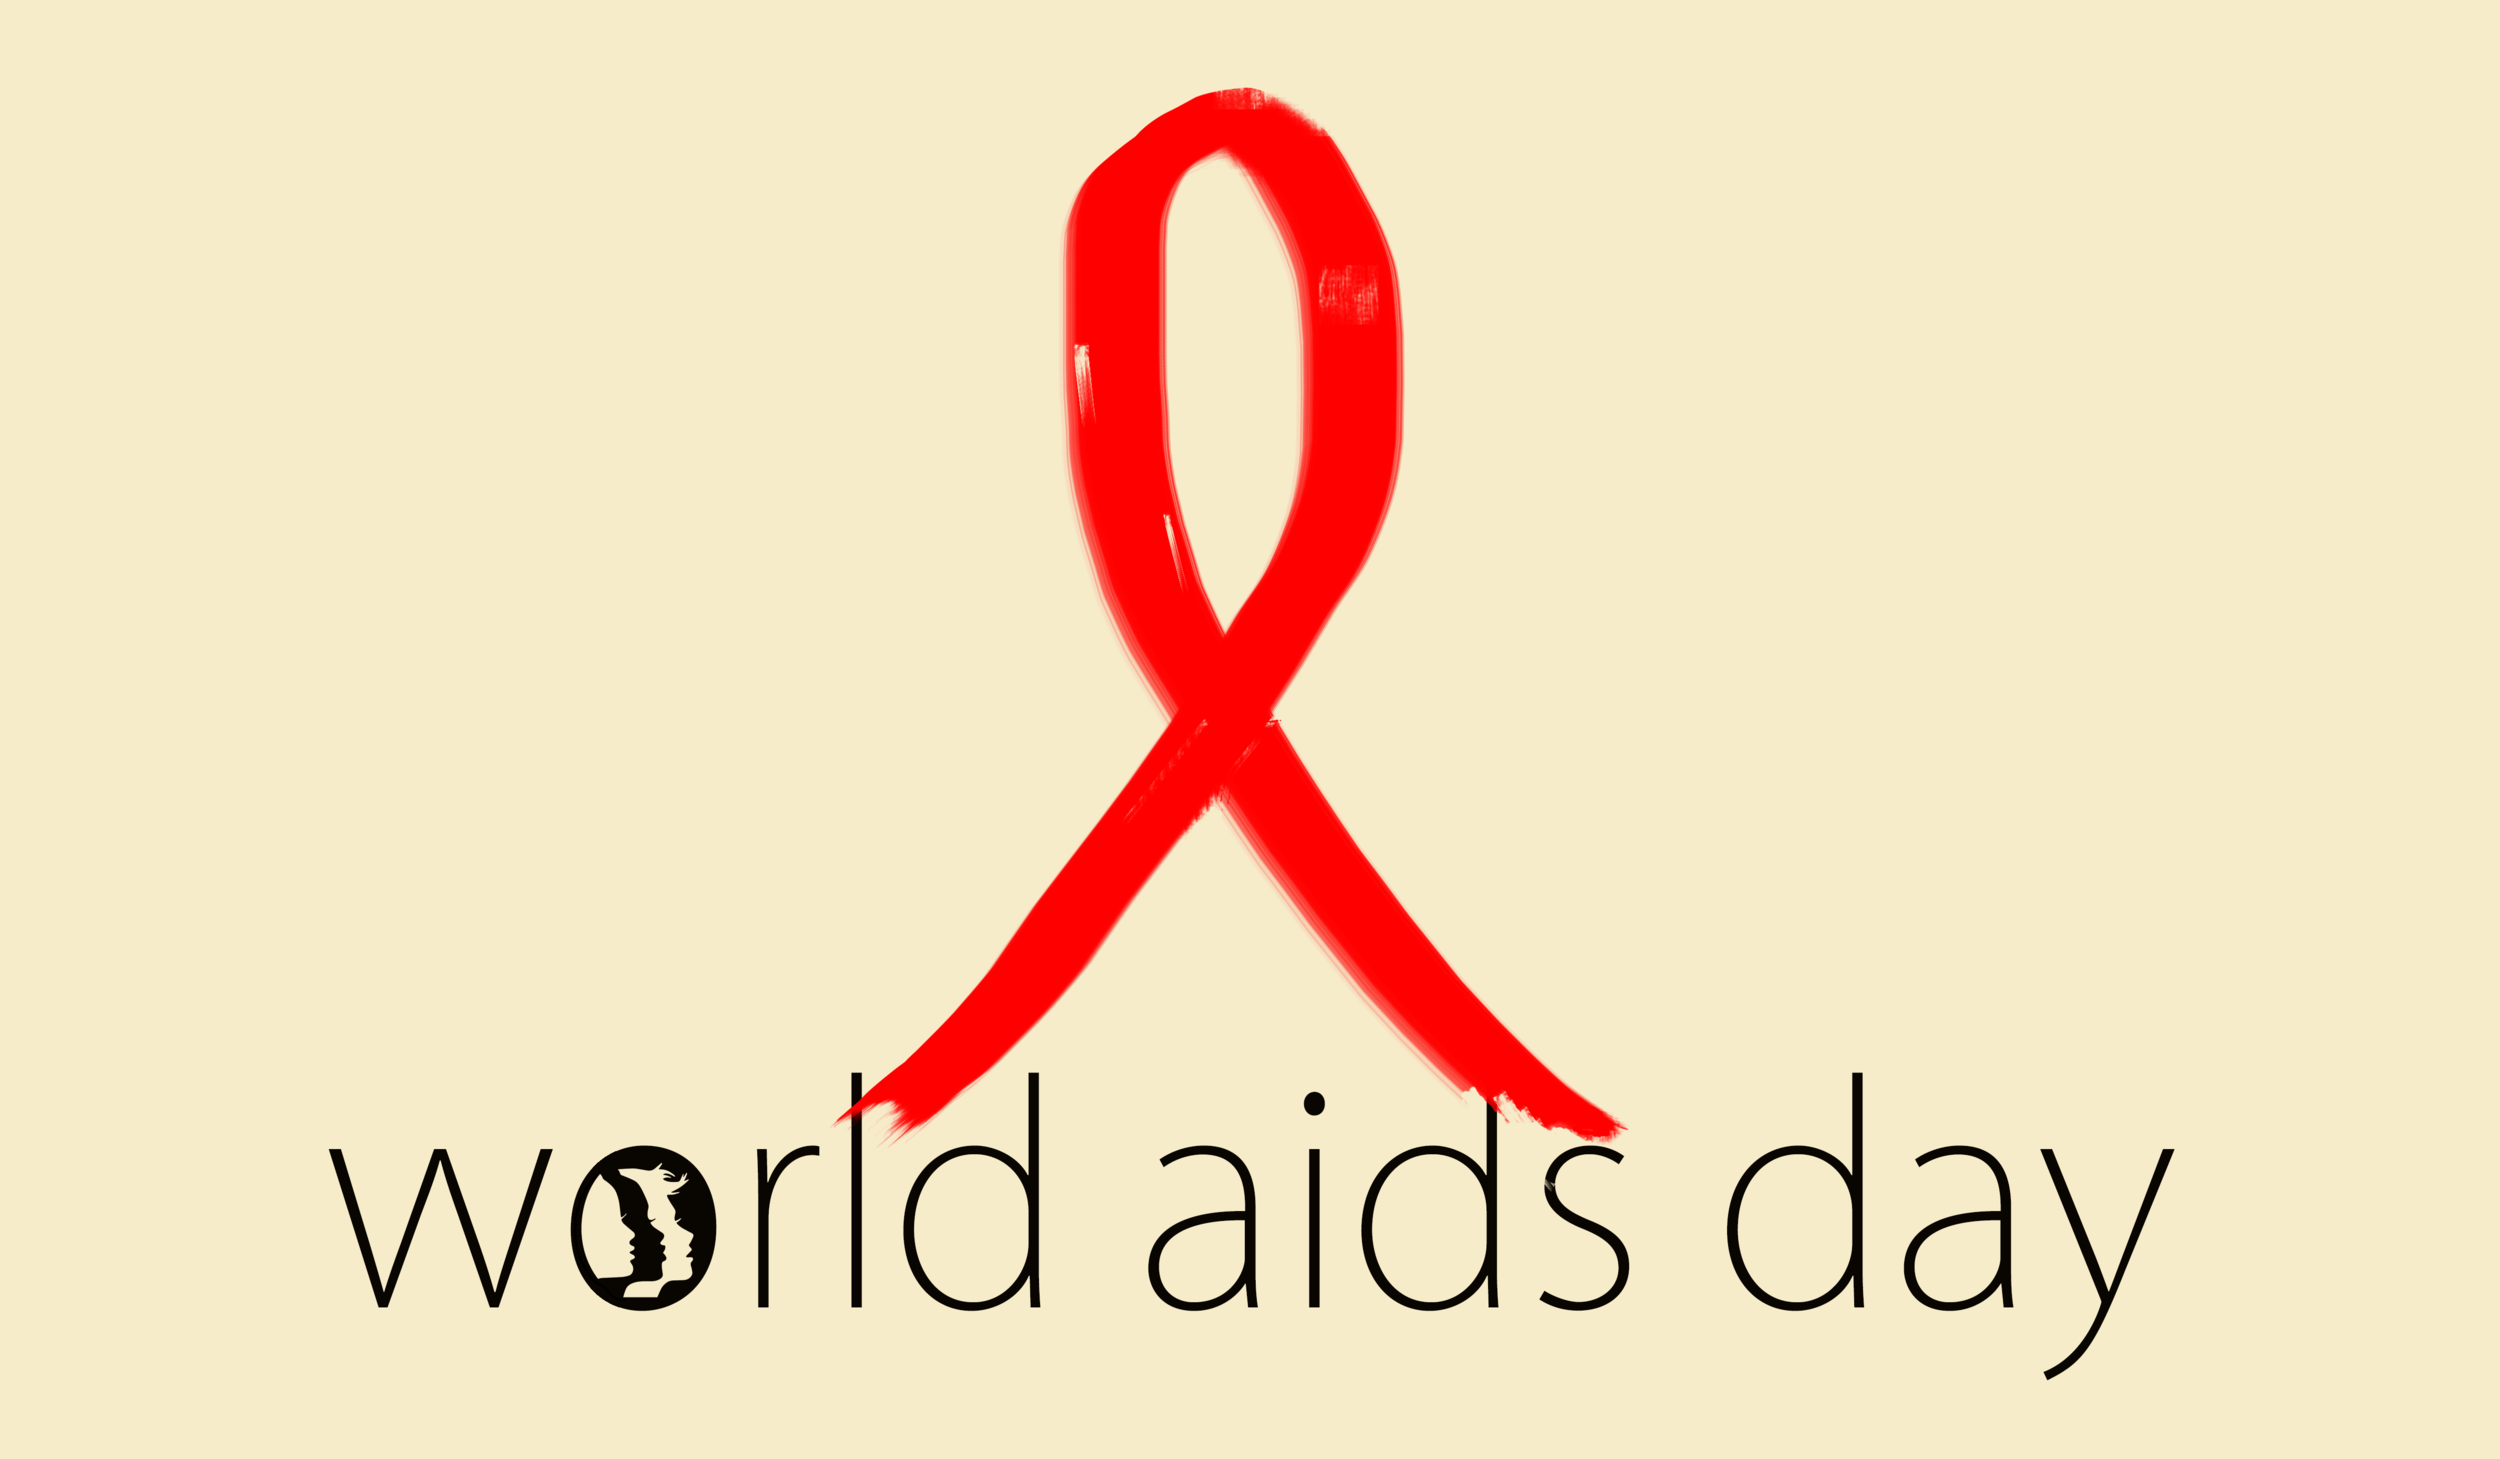 16 Days of Global: World AIDS Day